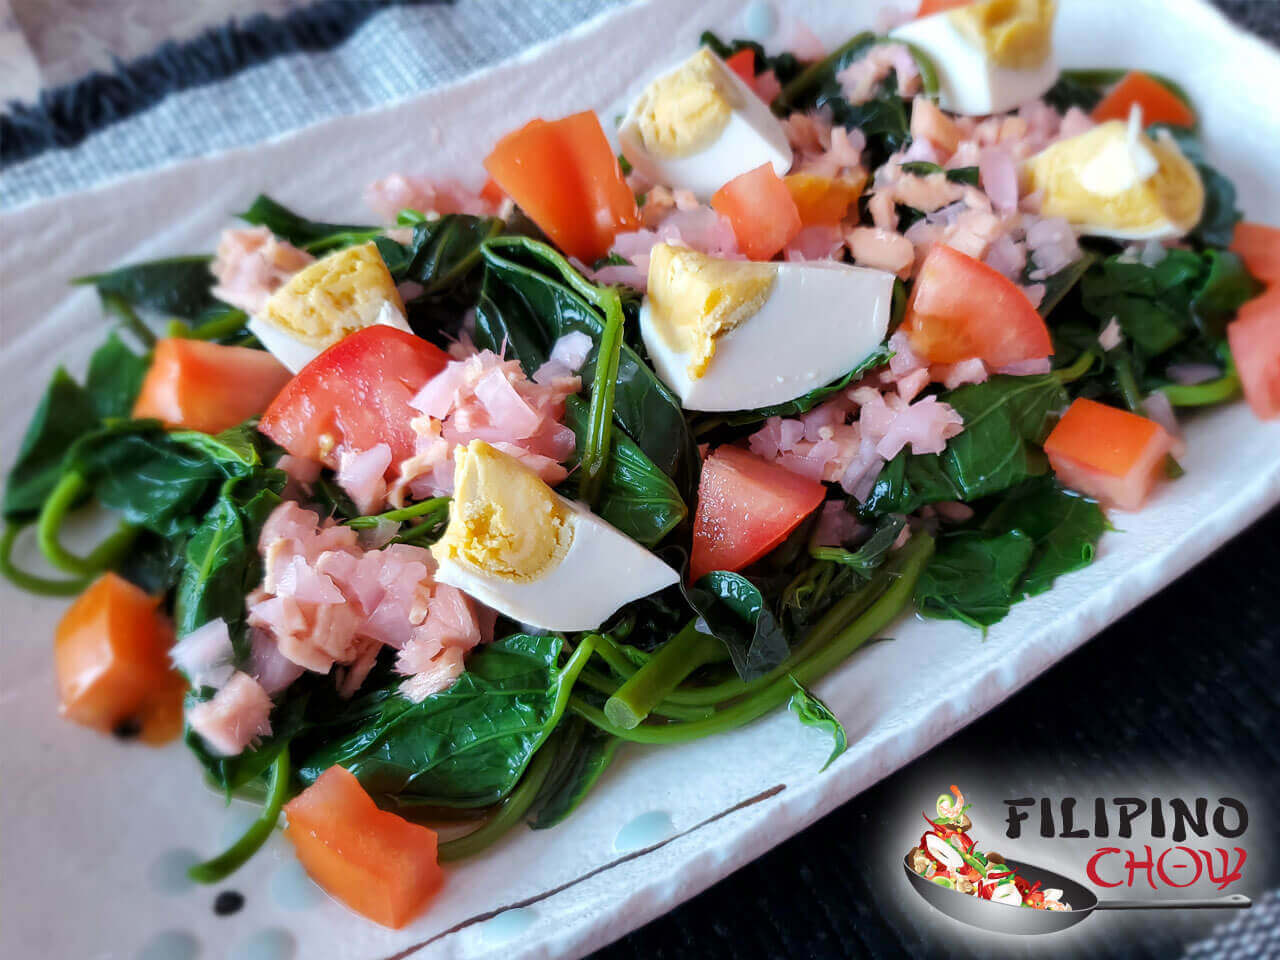 Kangkong Salad With Salted Egg Filipino Chow S Philippine Food And Asian Recipes To Learn How